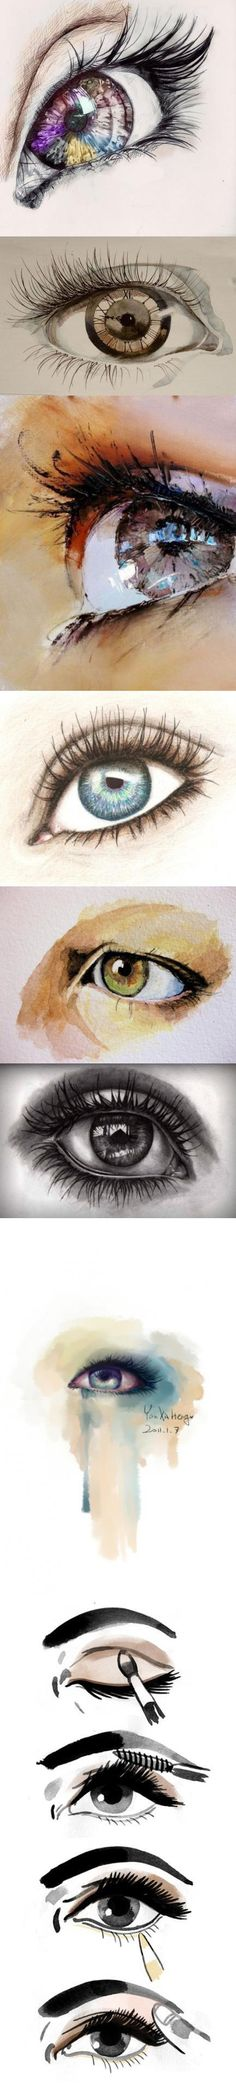 eye art for the new office. Eye Art, Drawing Techniques, Art Tips, Art Tutorials, Drawing Tutorials, Painting & Drawing, Drawing Eyes, Eyeball Drawing, Amazing Art